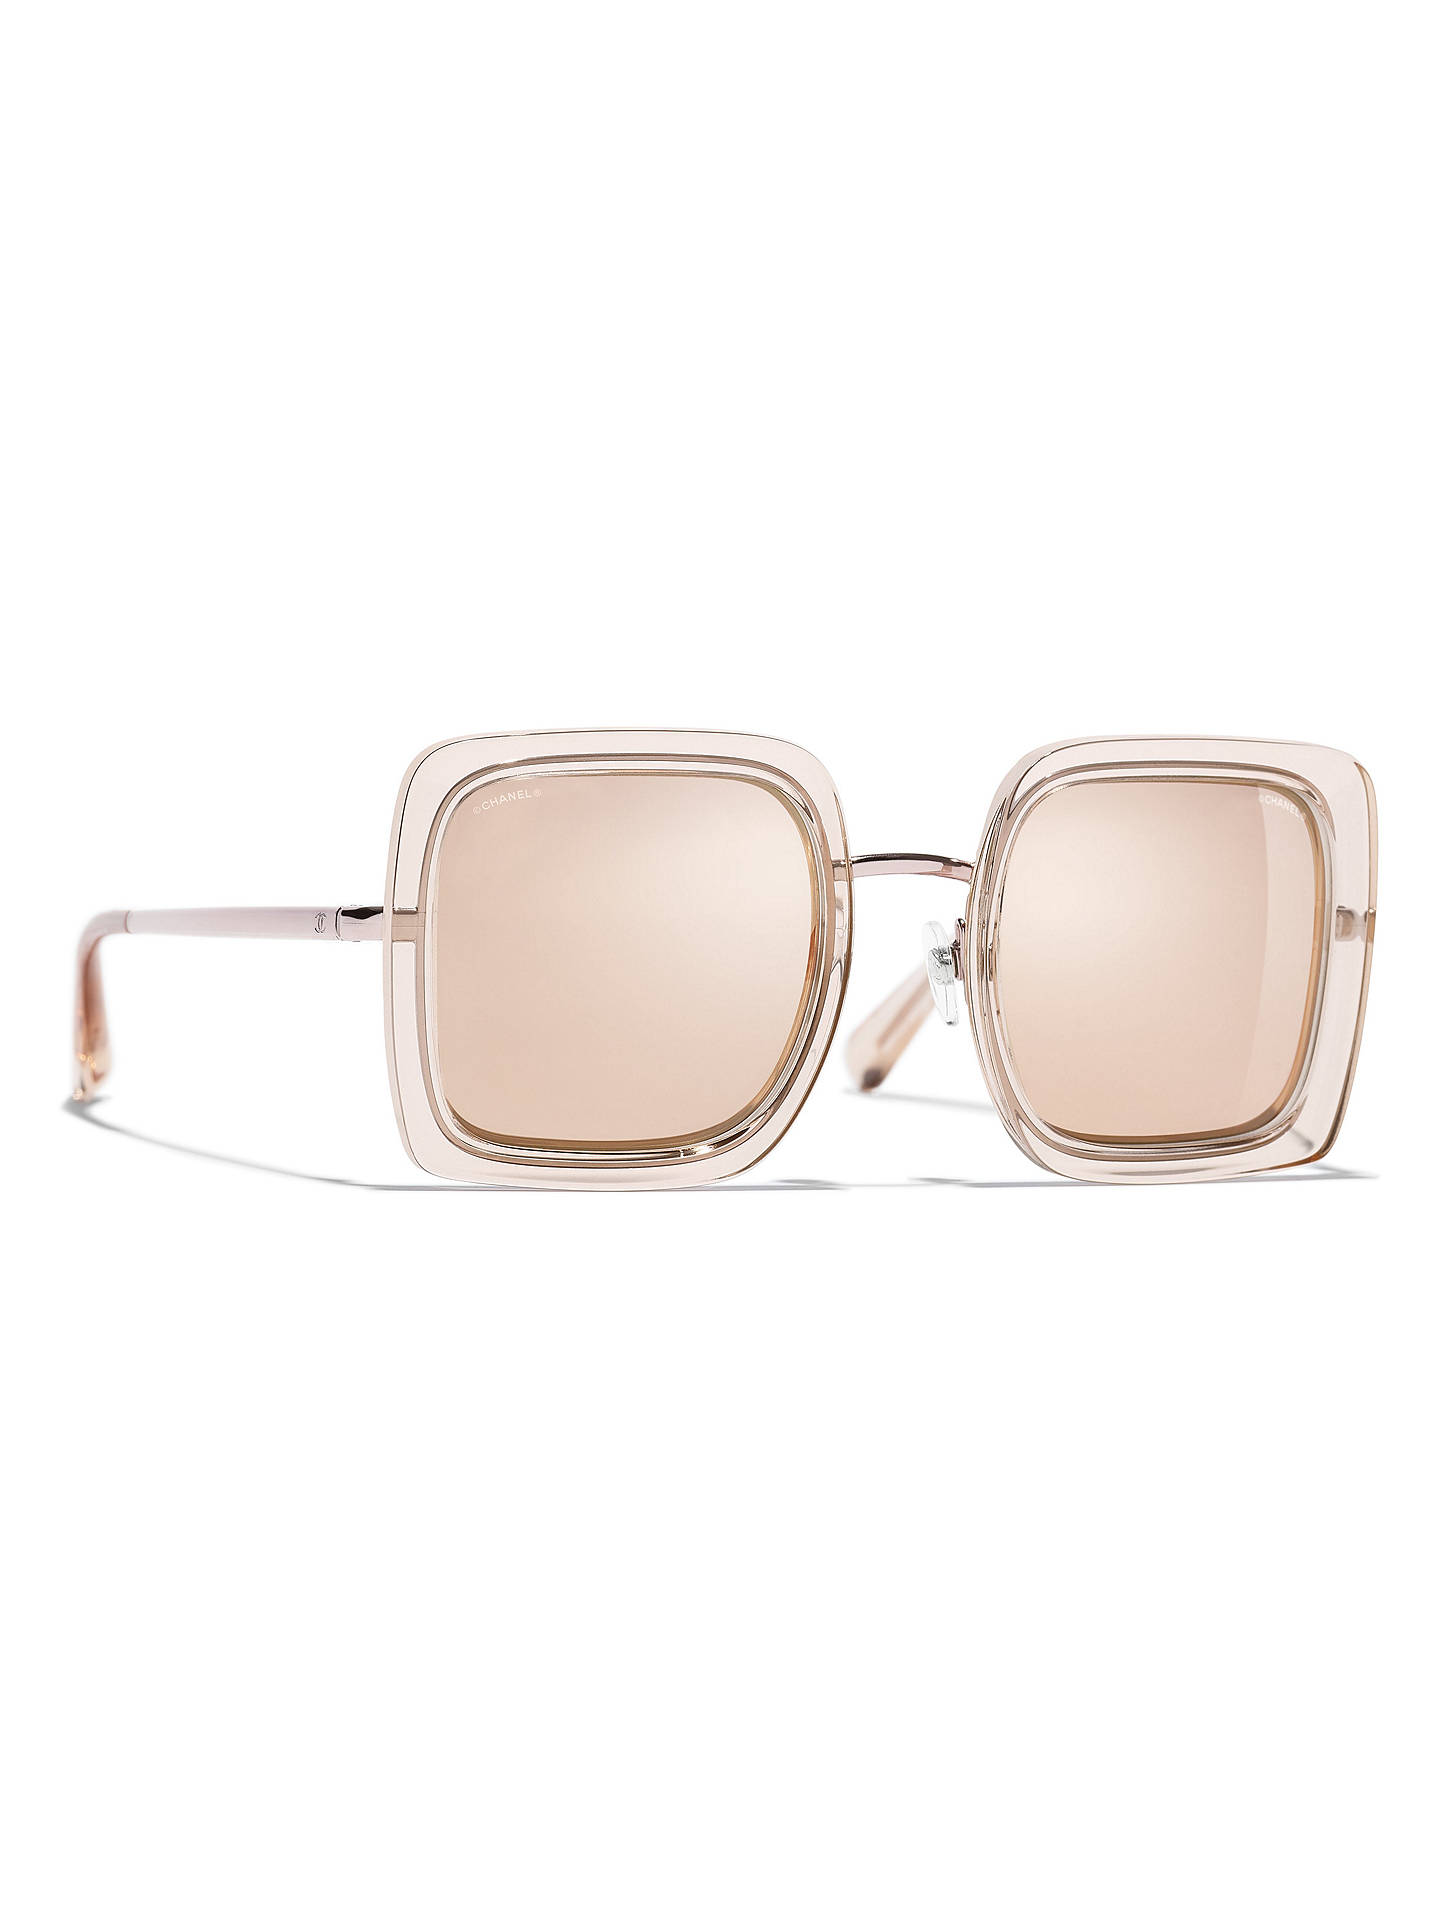 BuyCHANEL Square Sunglasses CH4240 Light Pink/Mirror Gold Online at johnlewis.com